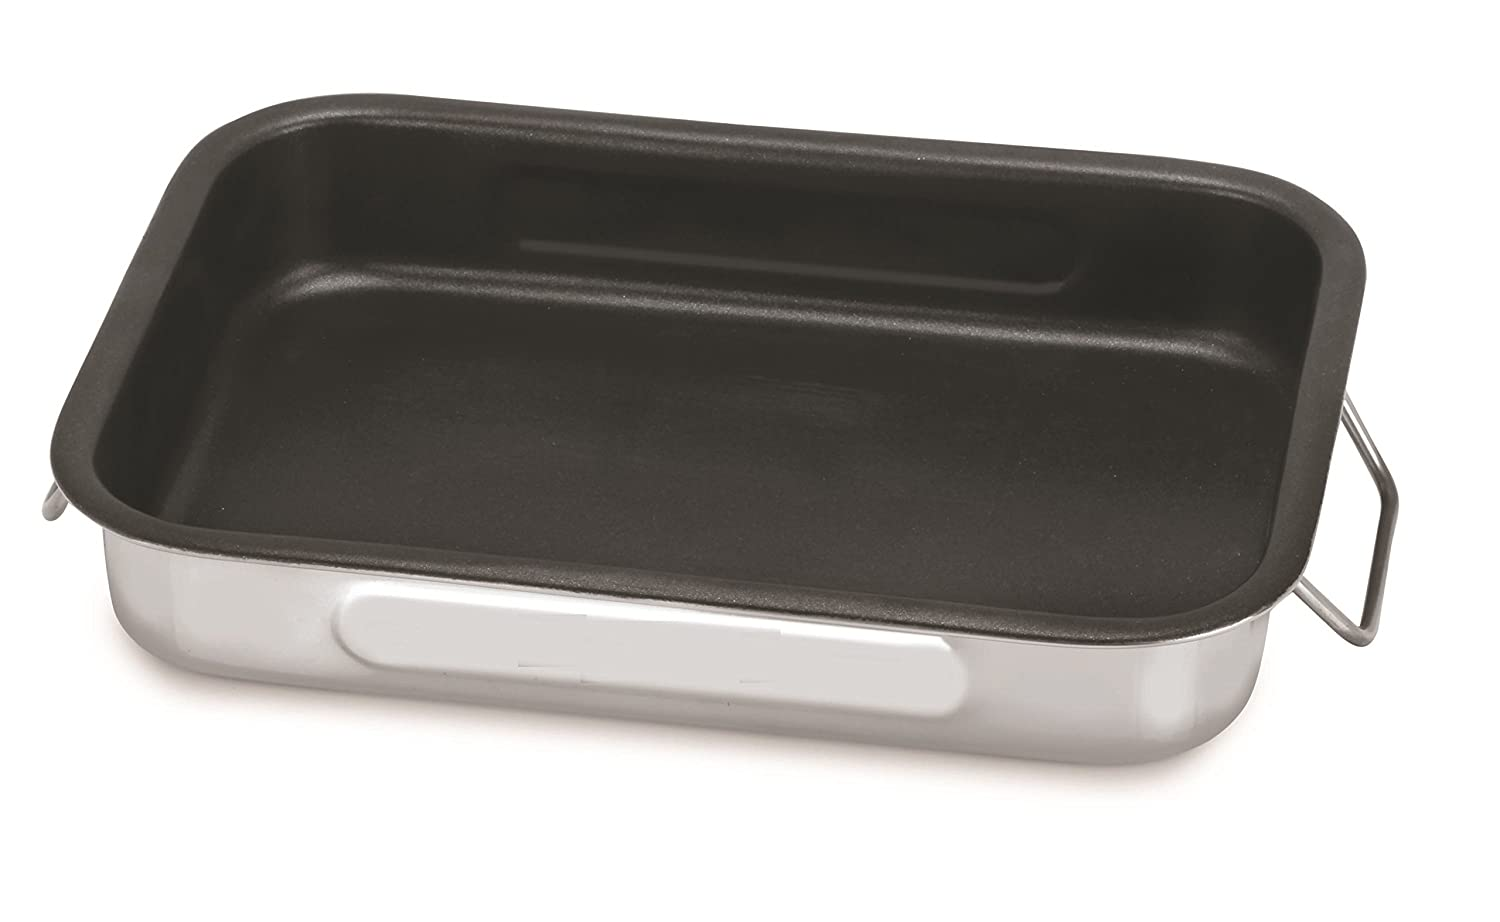 Stainless Steel Non Stick Roast Pan with Folding Handles // CHEF DIRECT // Rectangular Lasagna Pan for Baking, Grilling, Roasting // OTG Oven Safe (Length 50cm X Width 35cm)